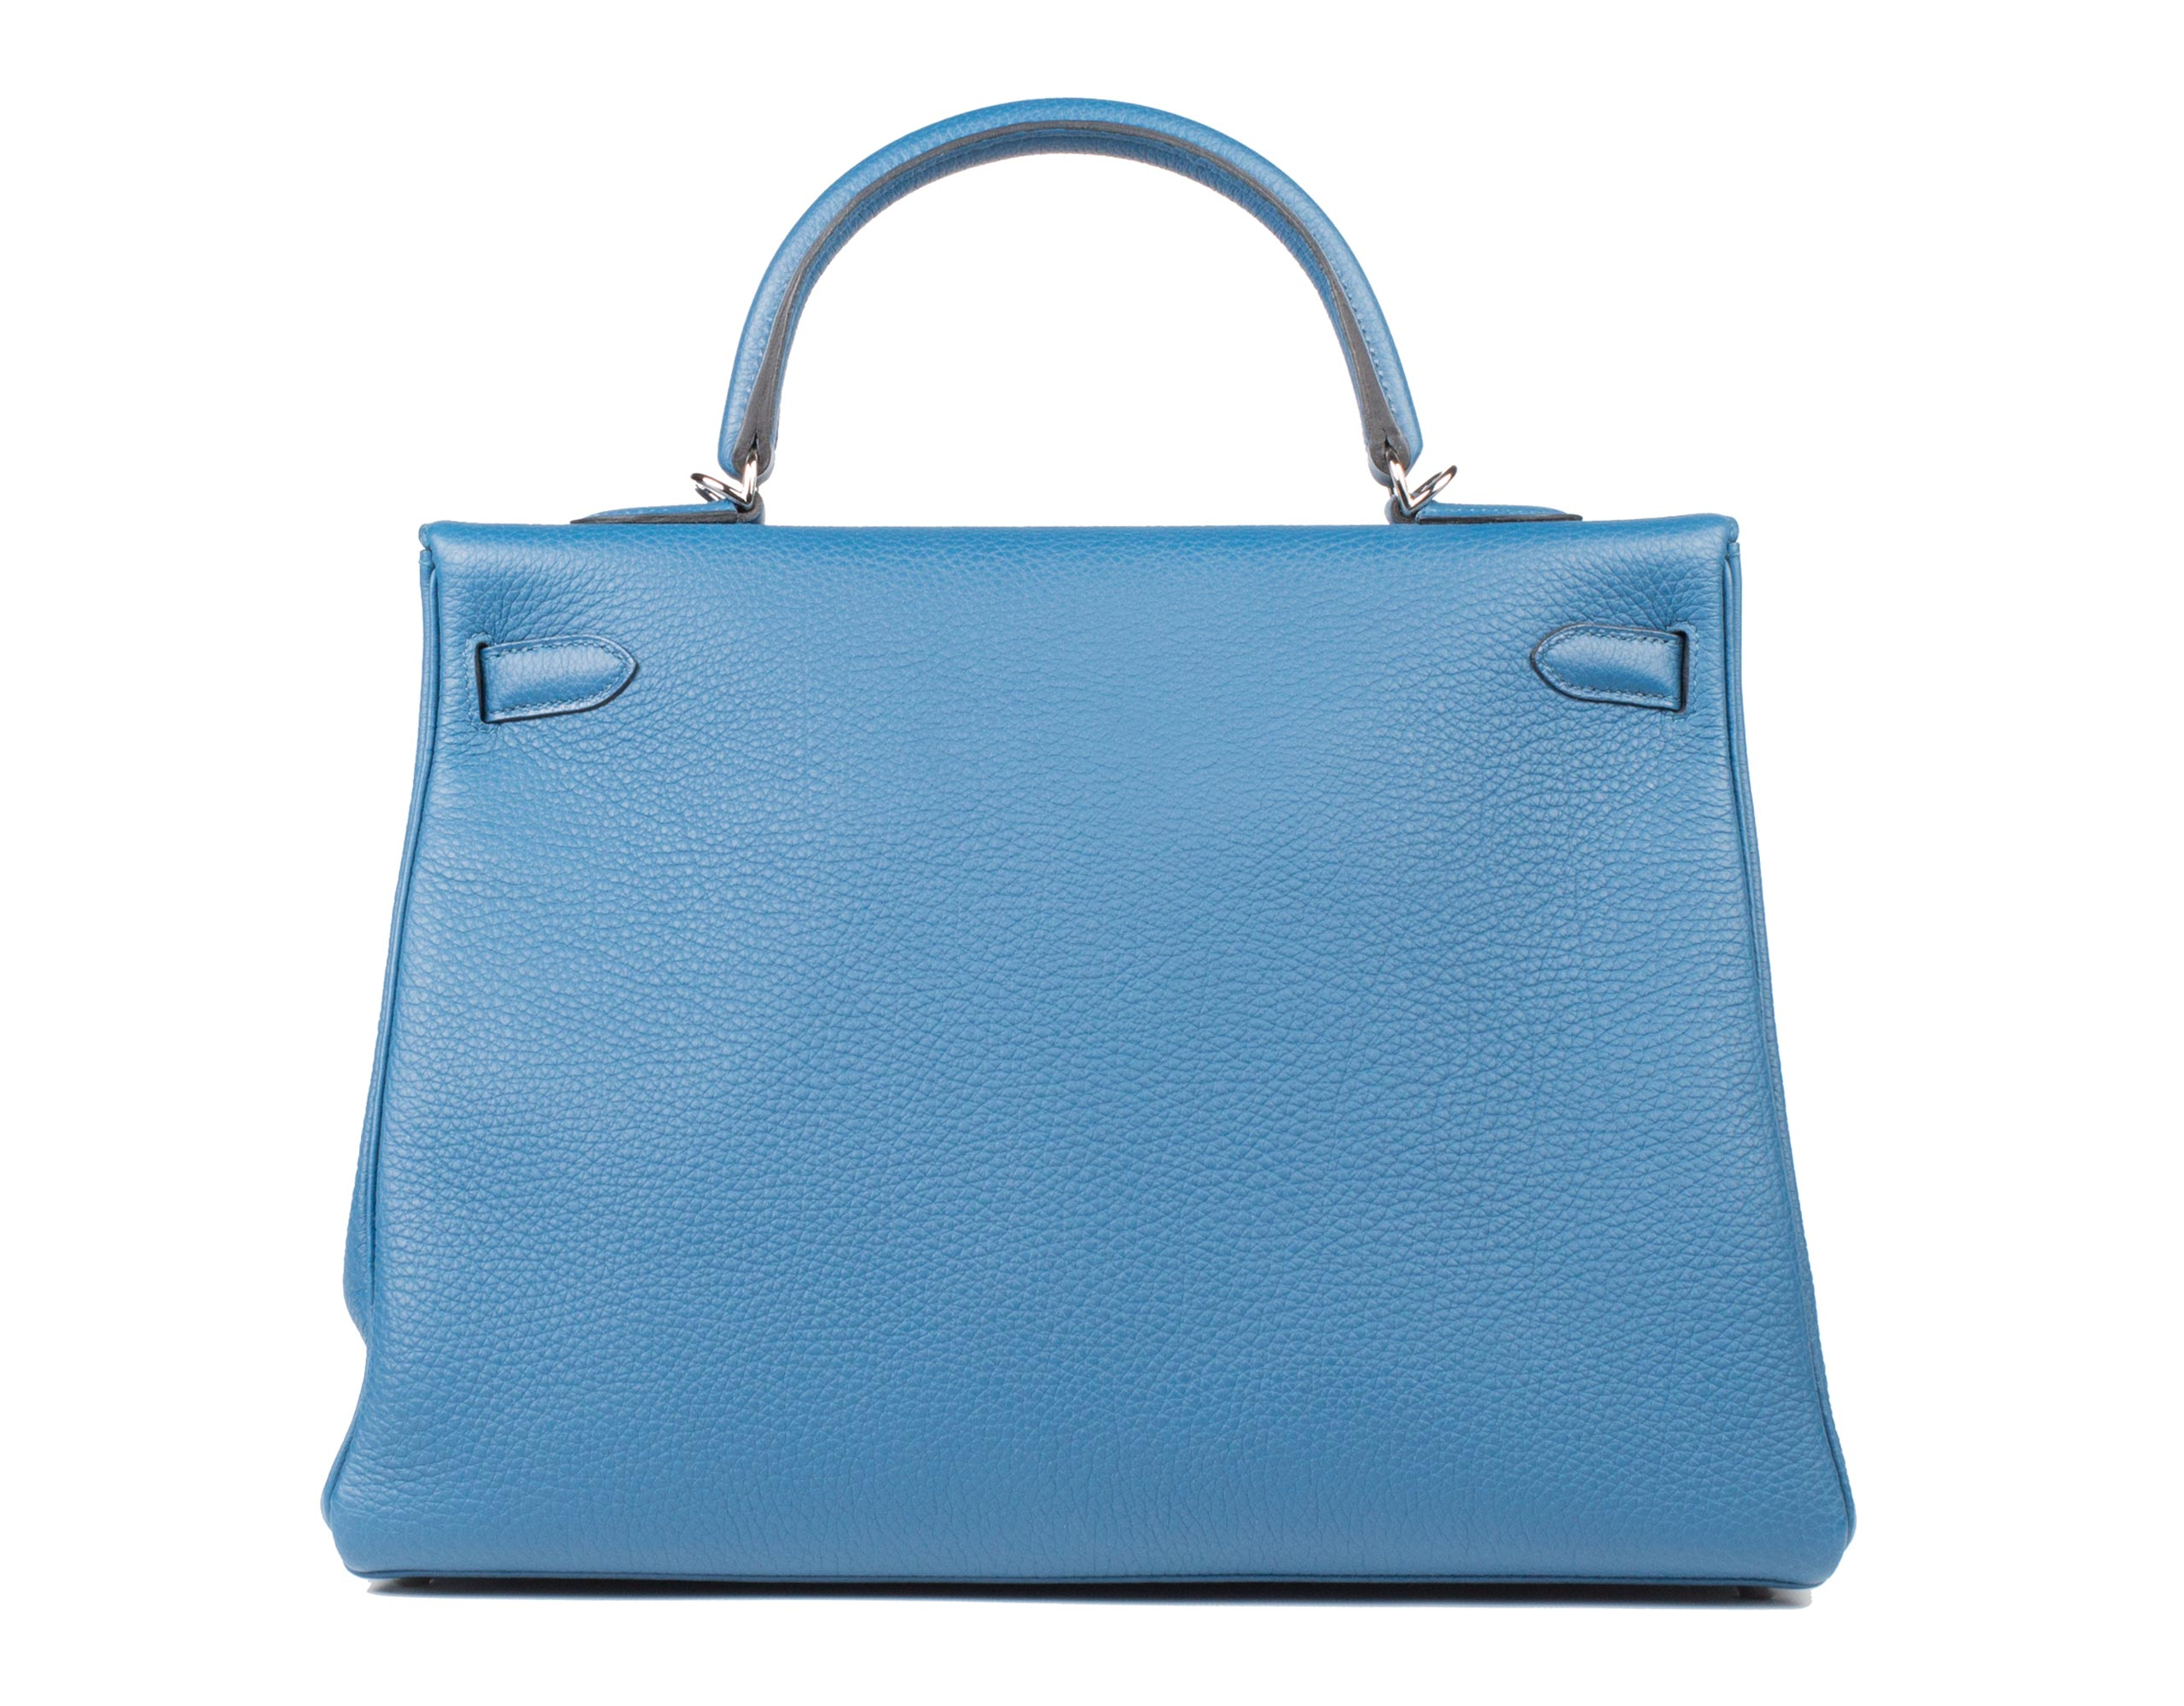 Hermes Bag Kelly Blue Galice Togo 35cm K75 Back